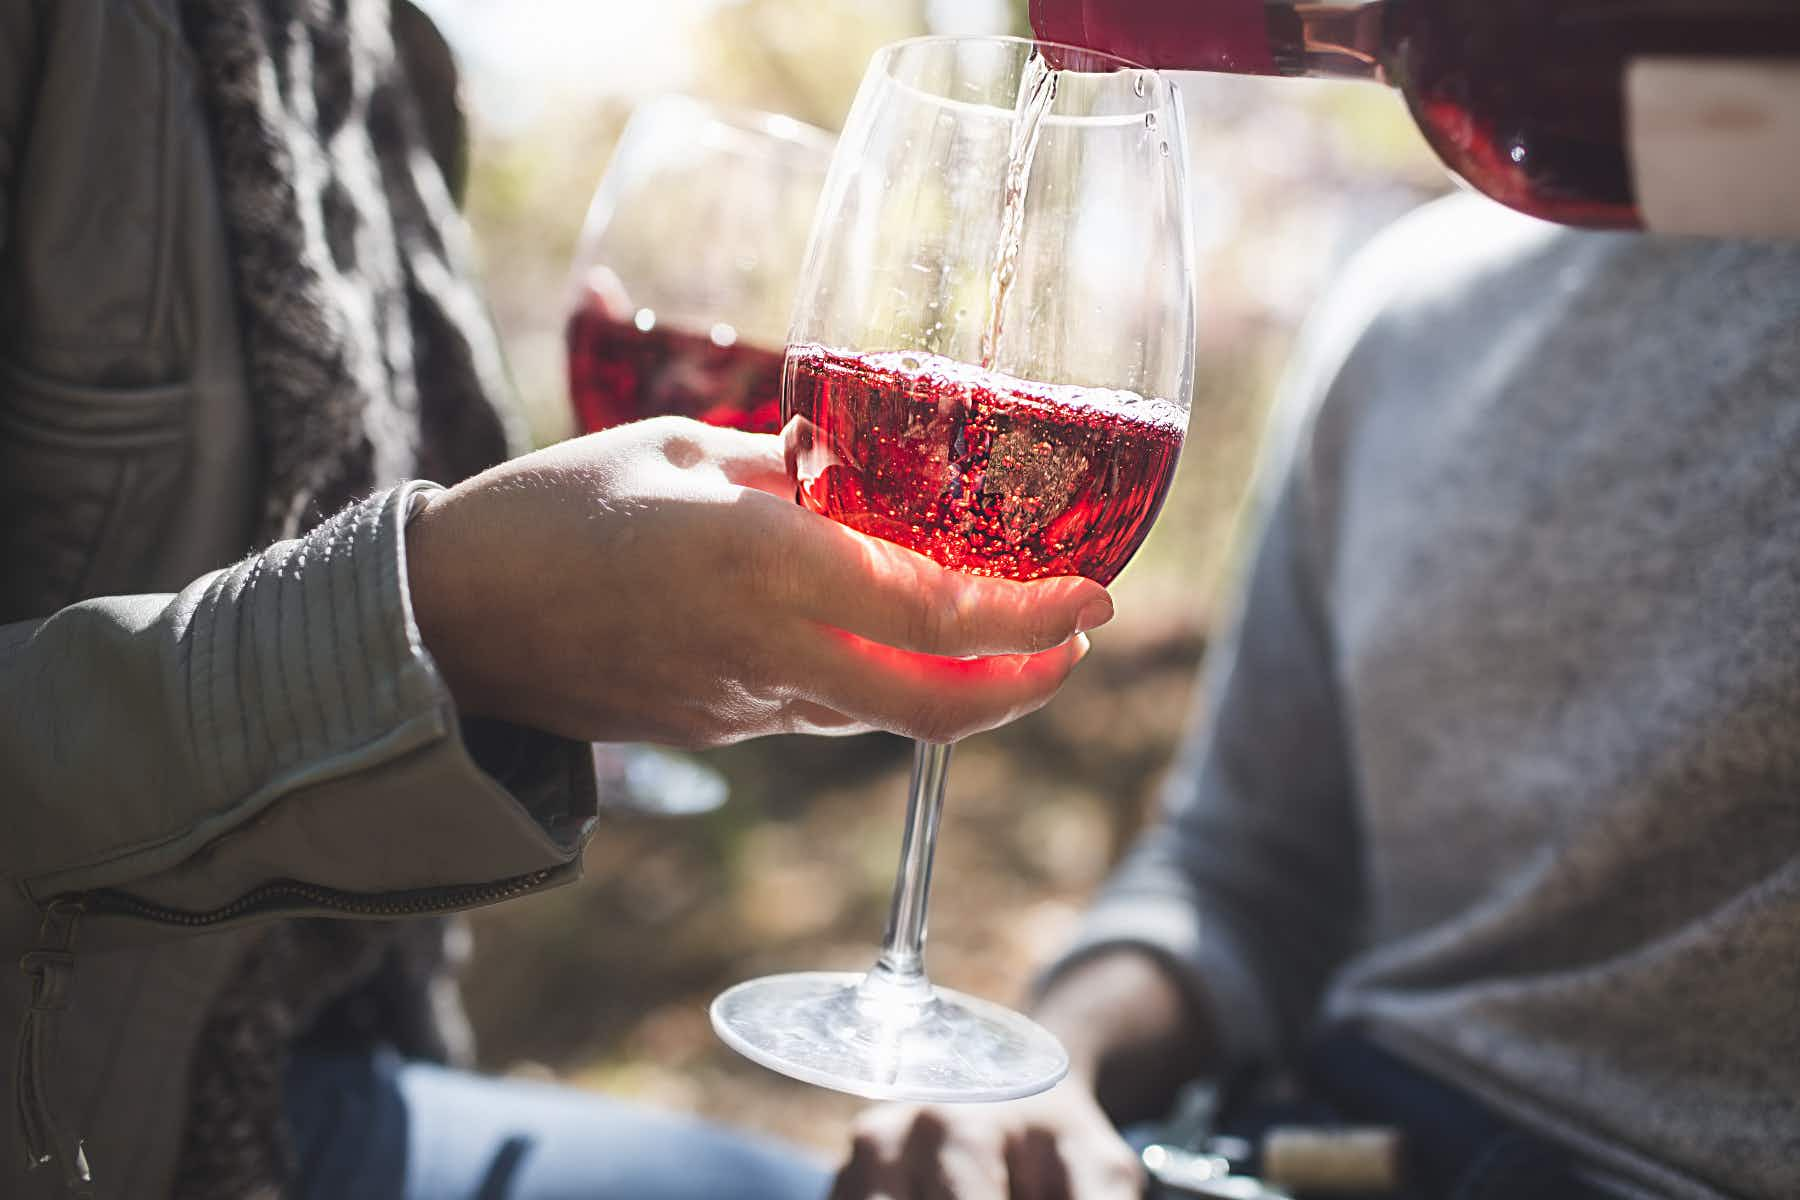 This company has effectively just turned water into wine